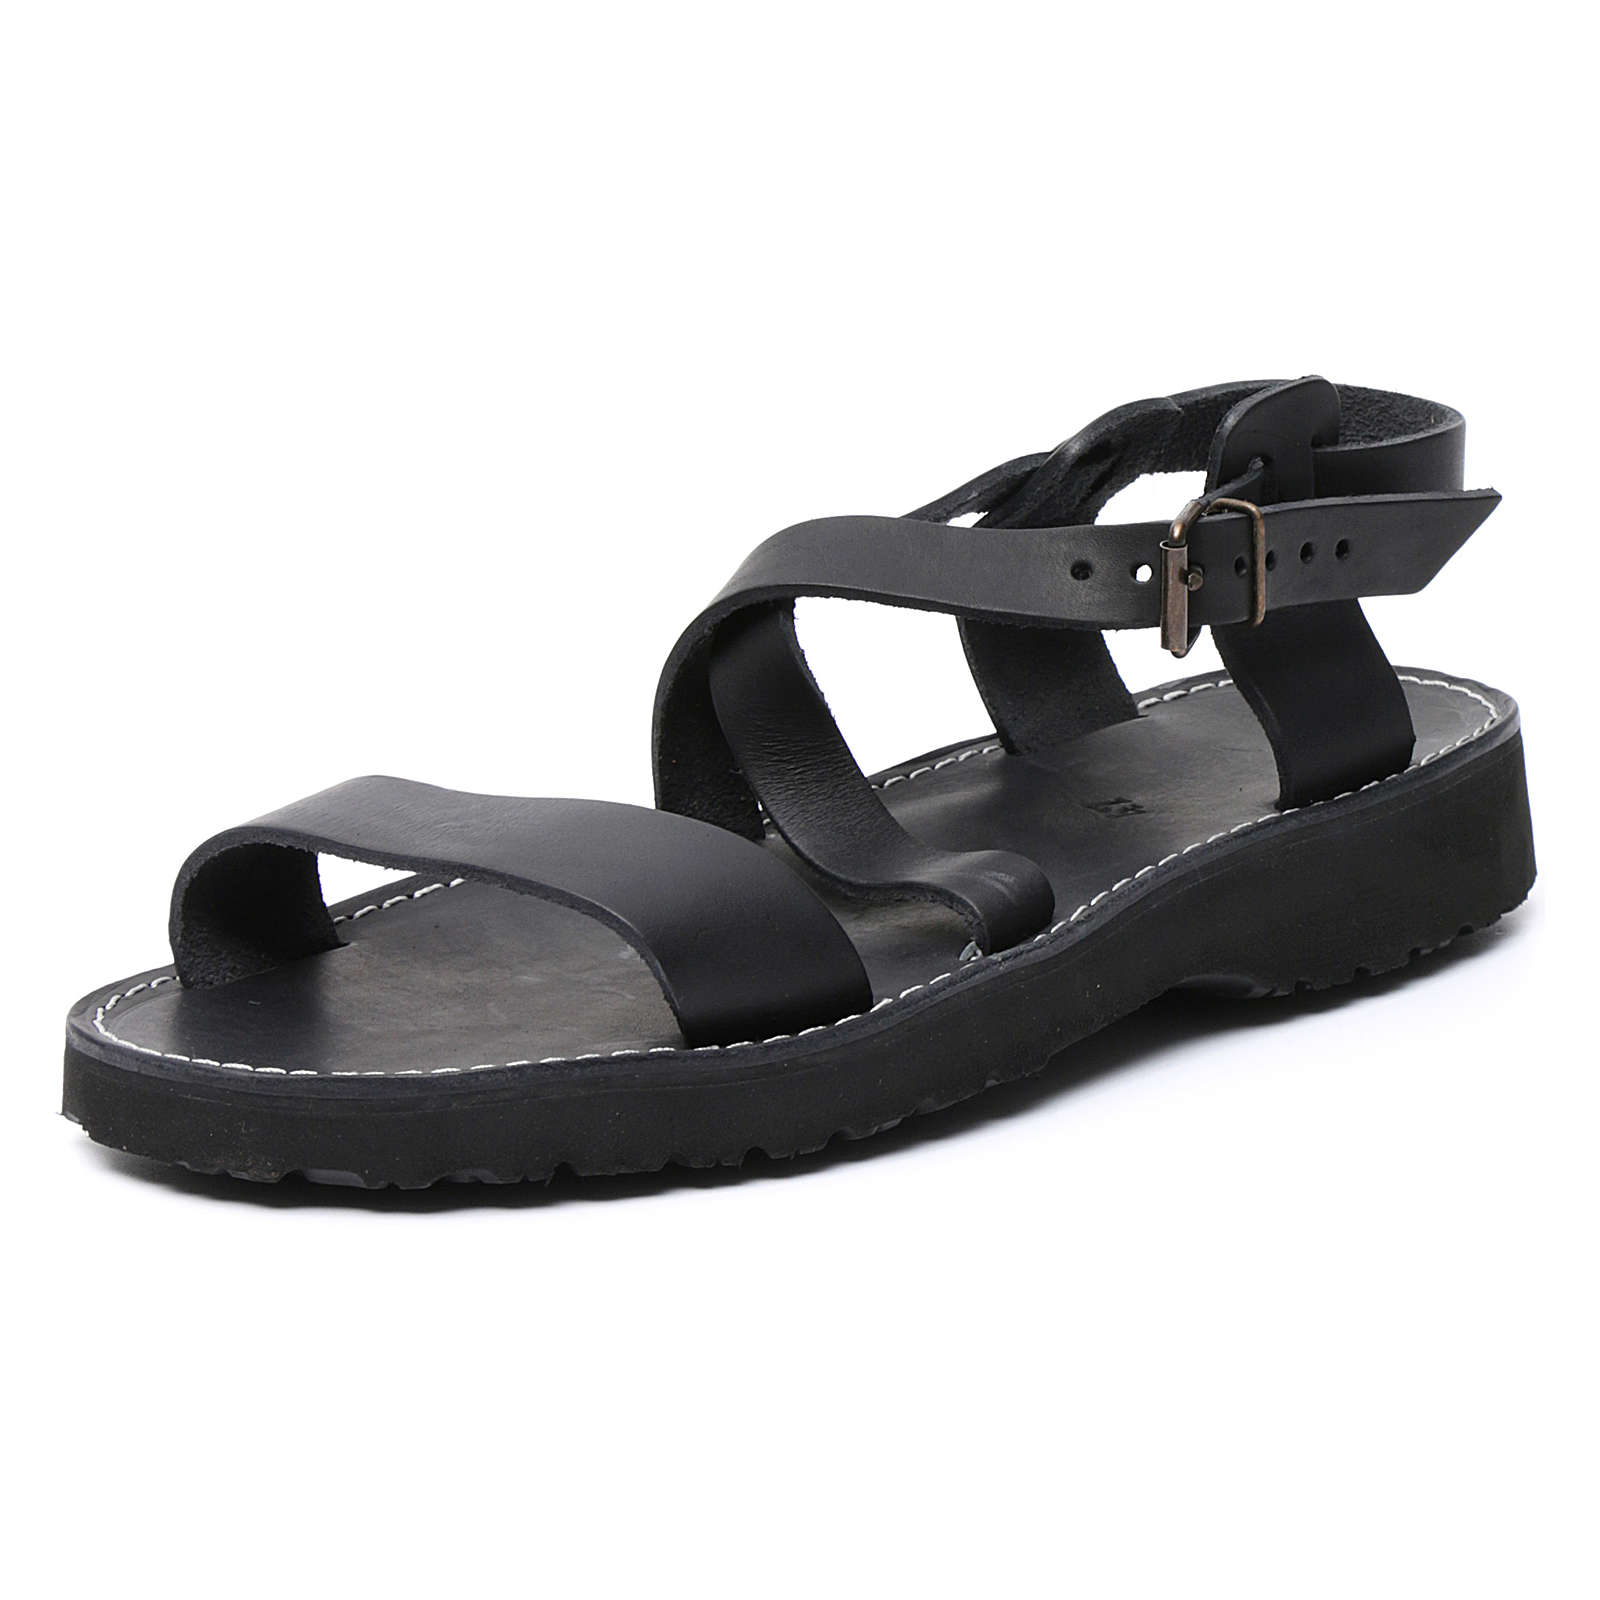 Benedictine sandals Nazareth model in leather Monks of Bethlehem 4